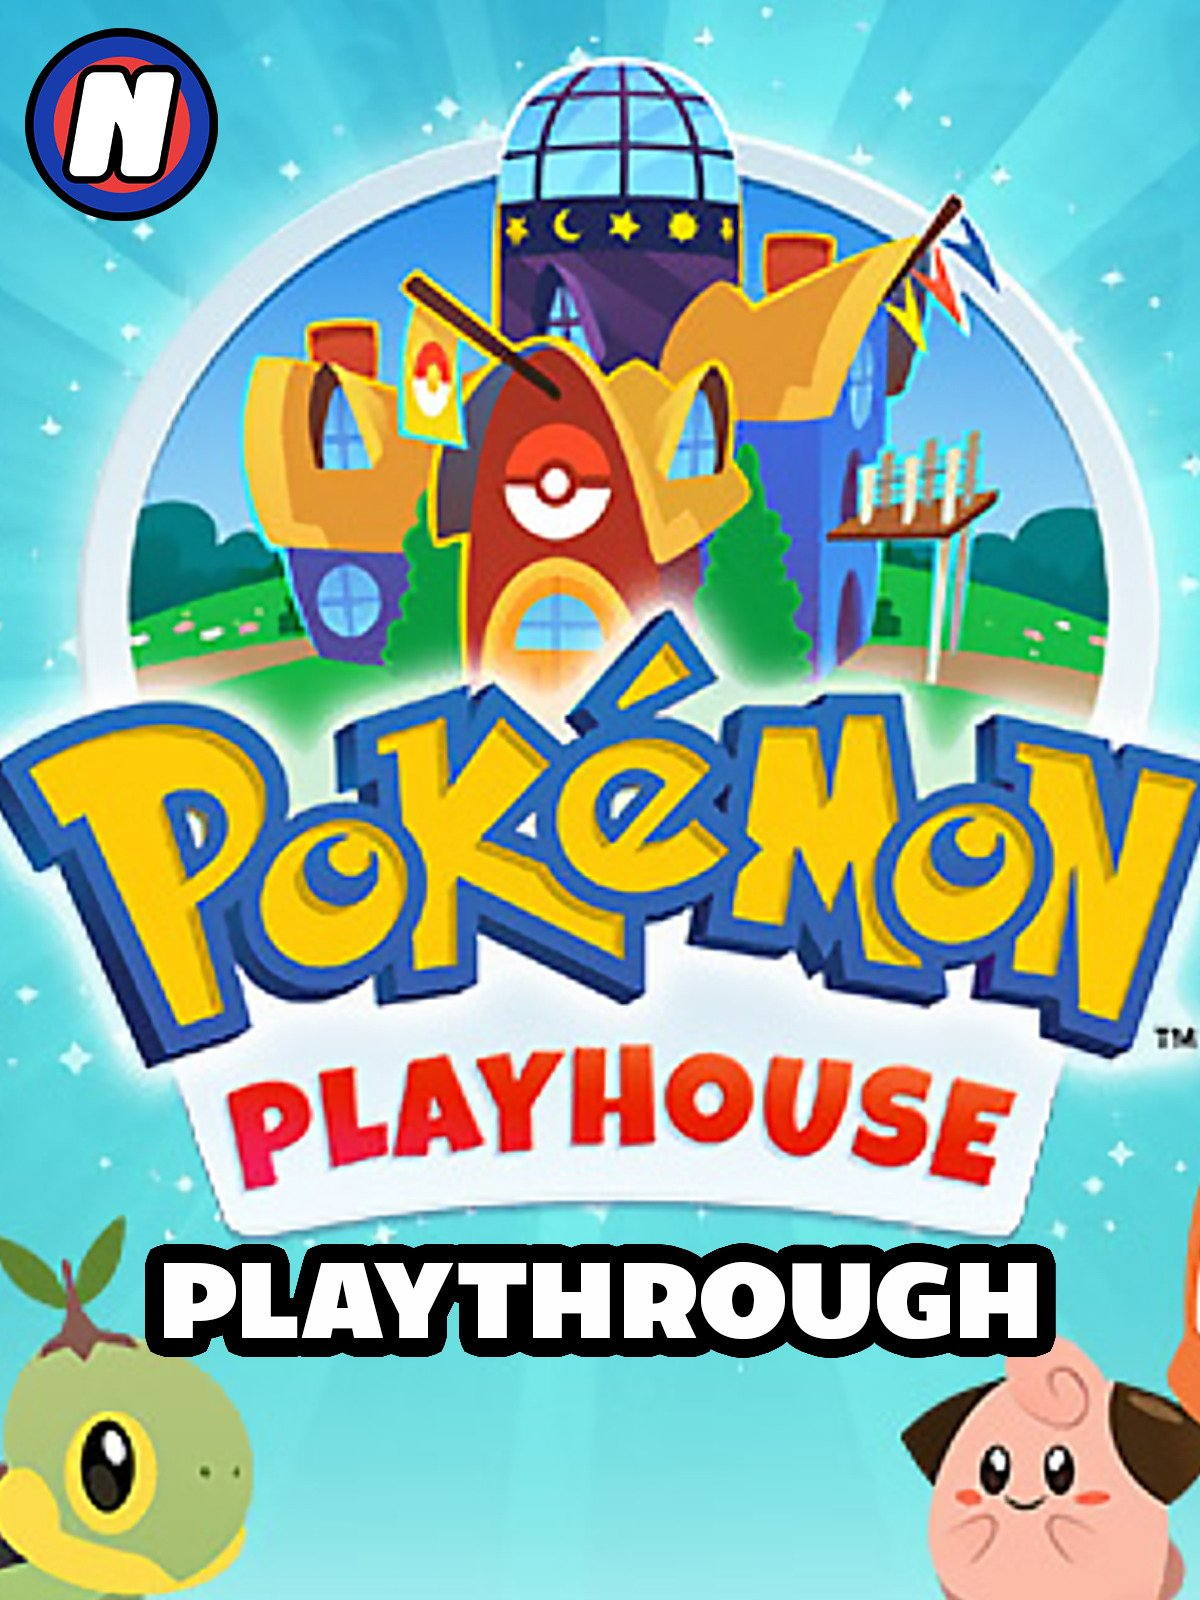 Clip: Pokemon Playhouse Playthrough